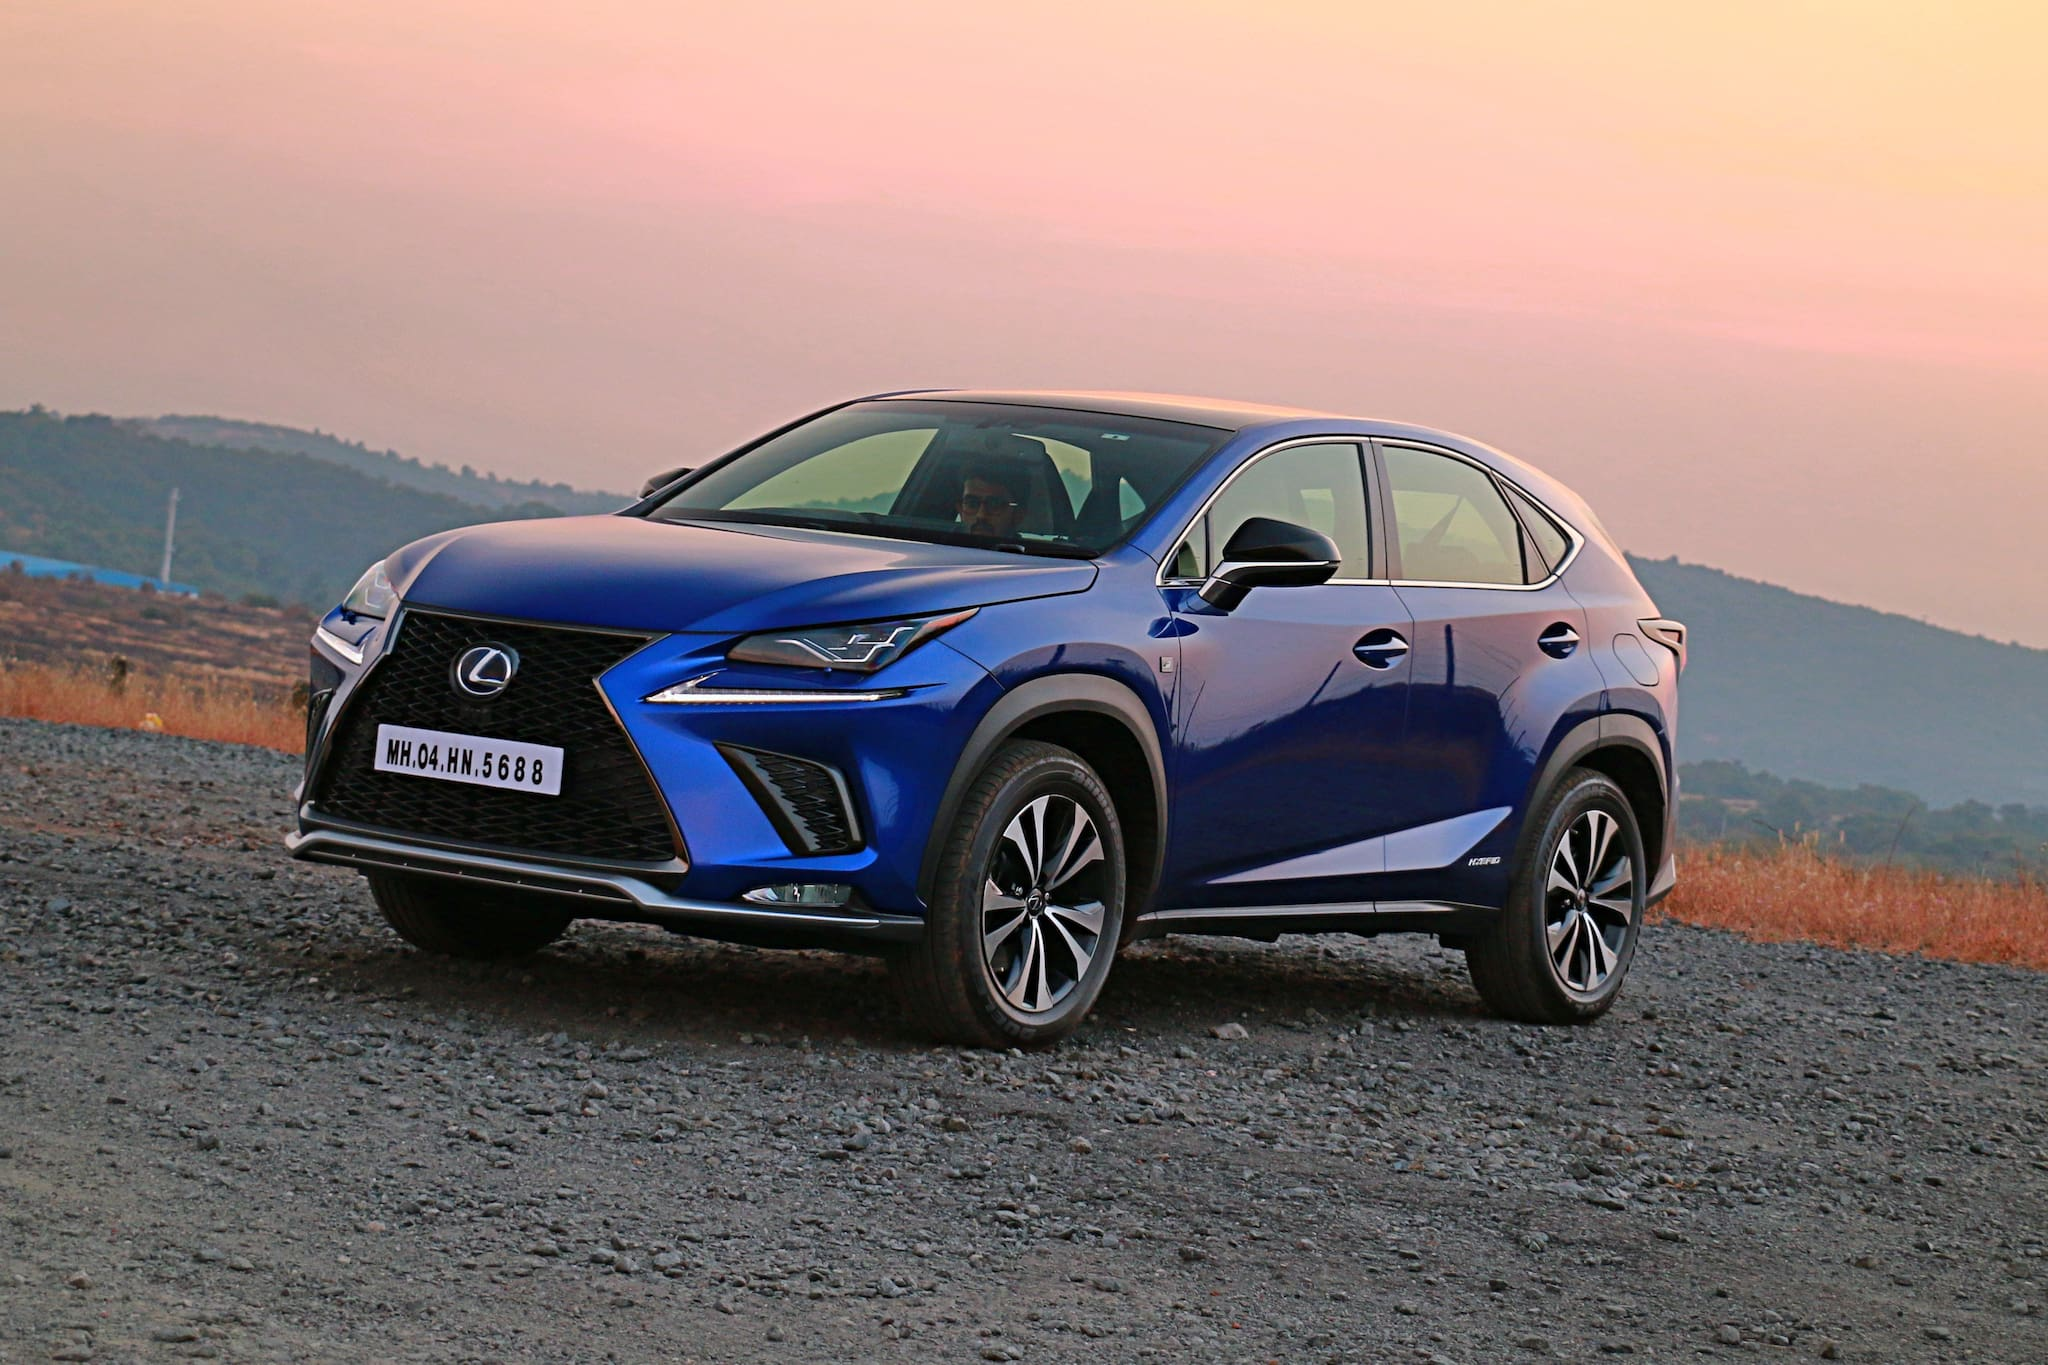 Lexus NX 300h: First Drive Review